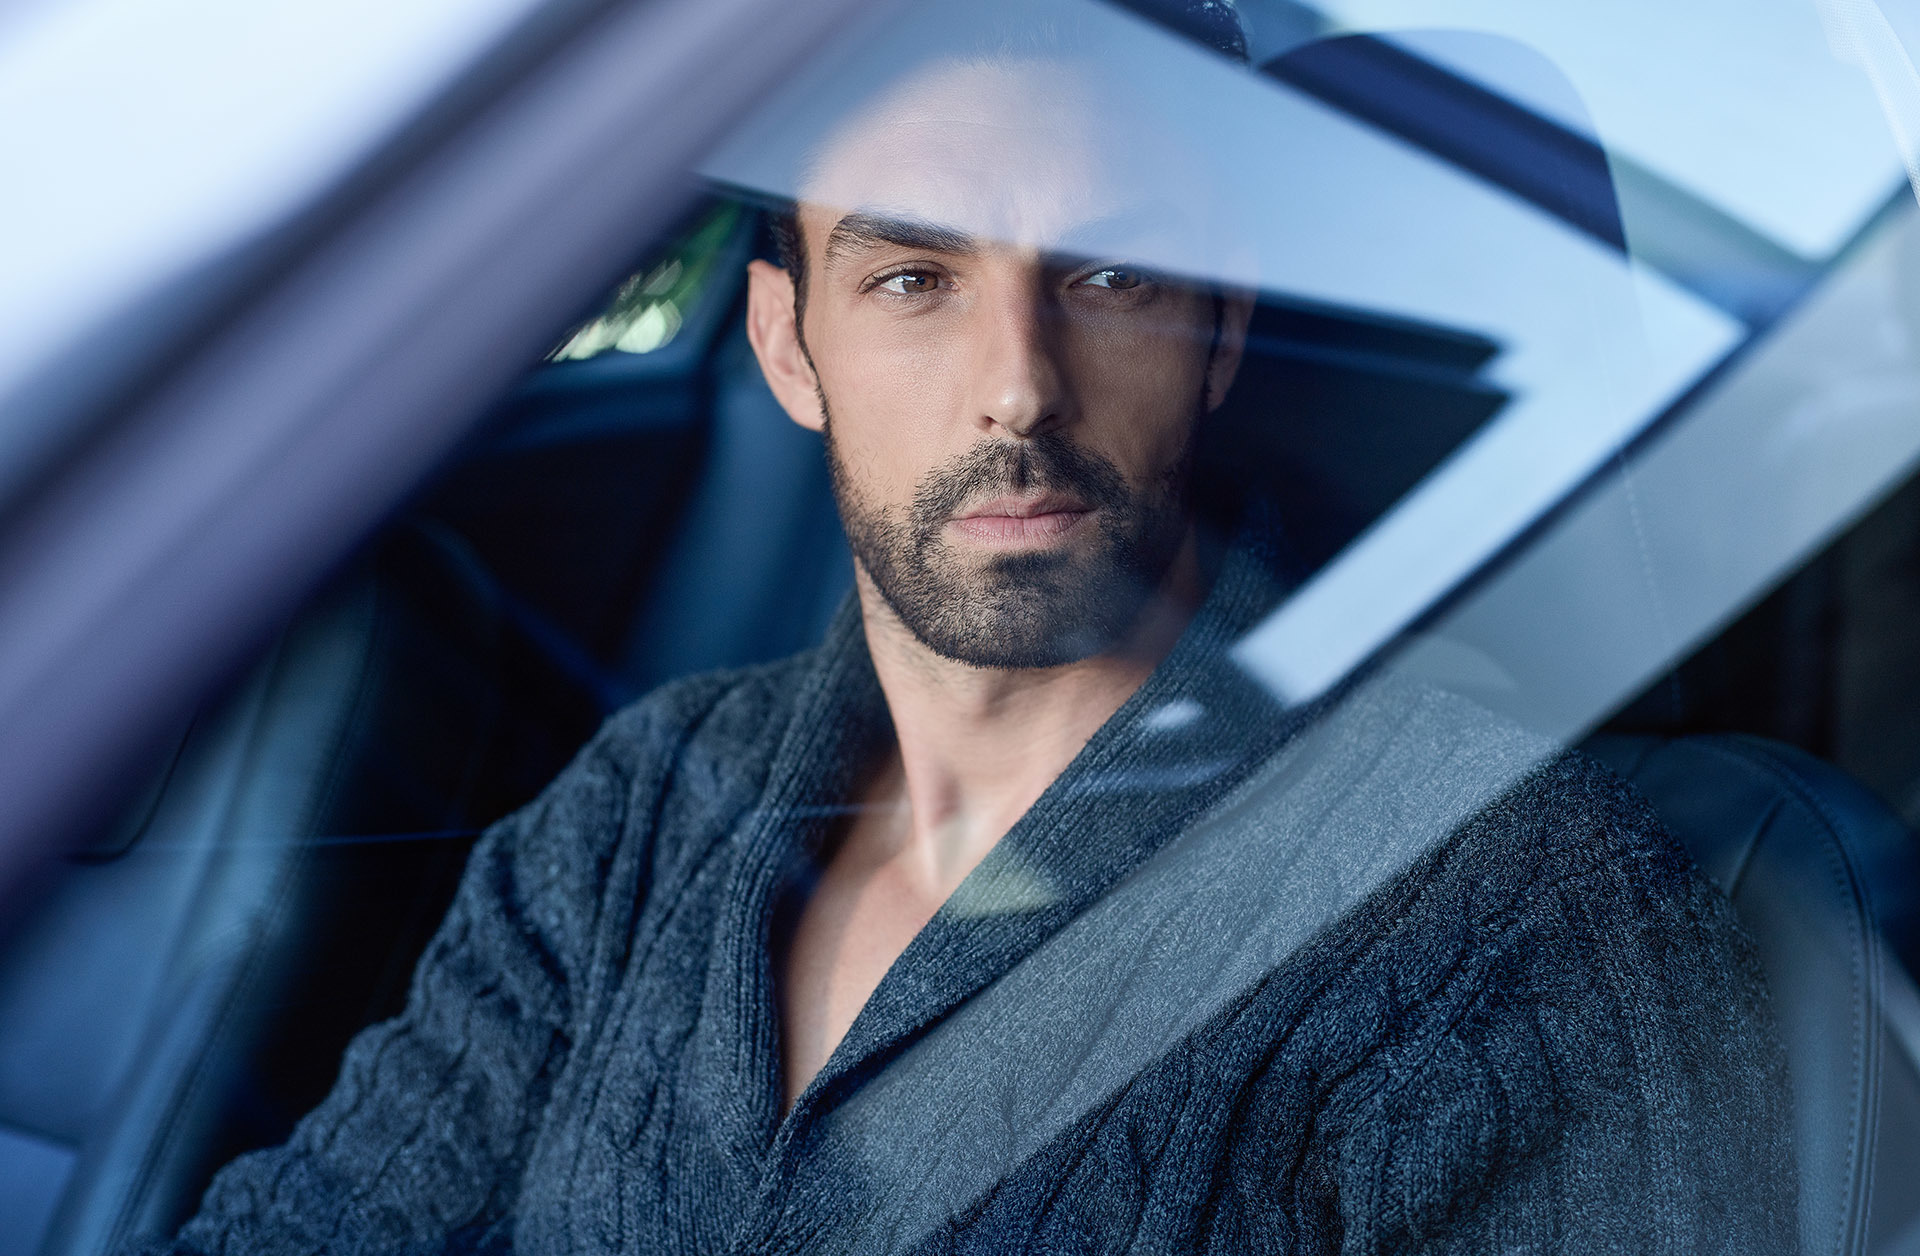 Man in front seat of car thoughtfully looking along